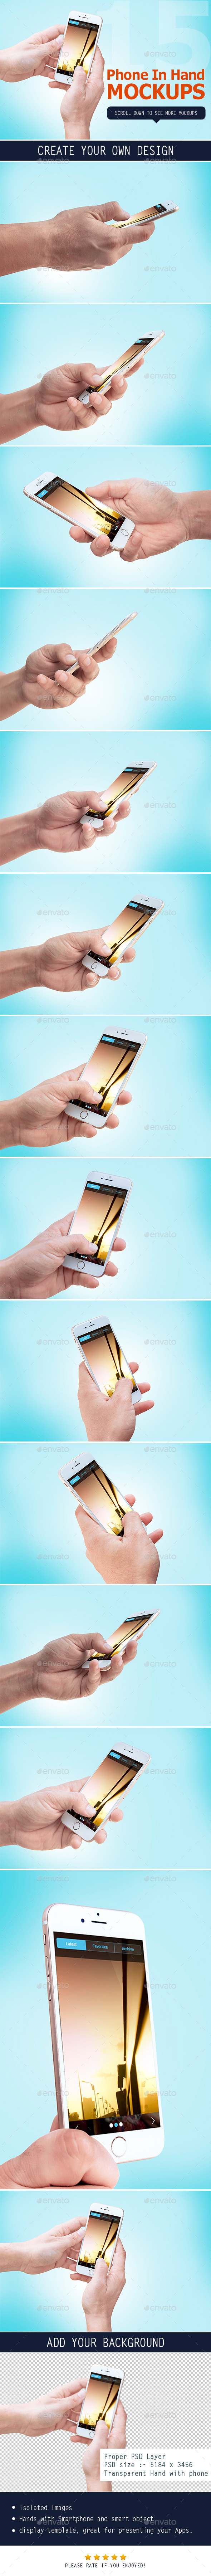 GraphicRiver Smartphone in Hand Mockup 11453586